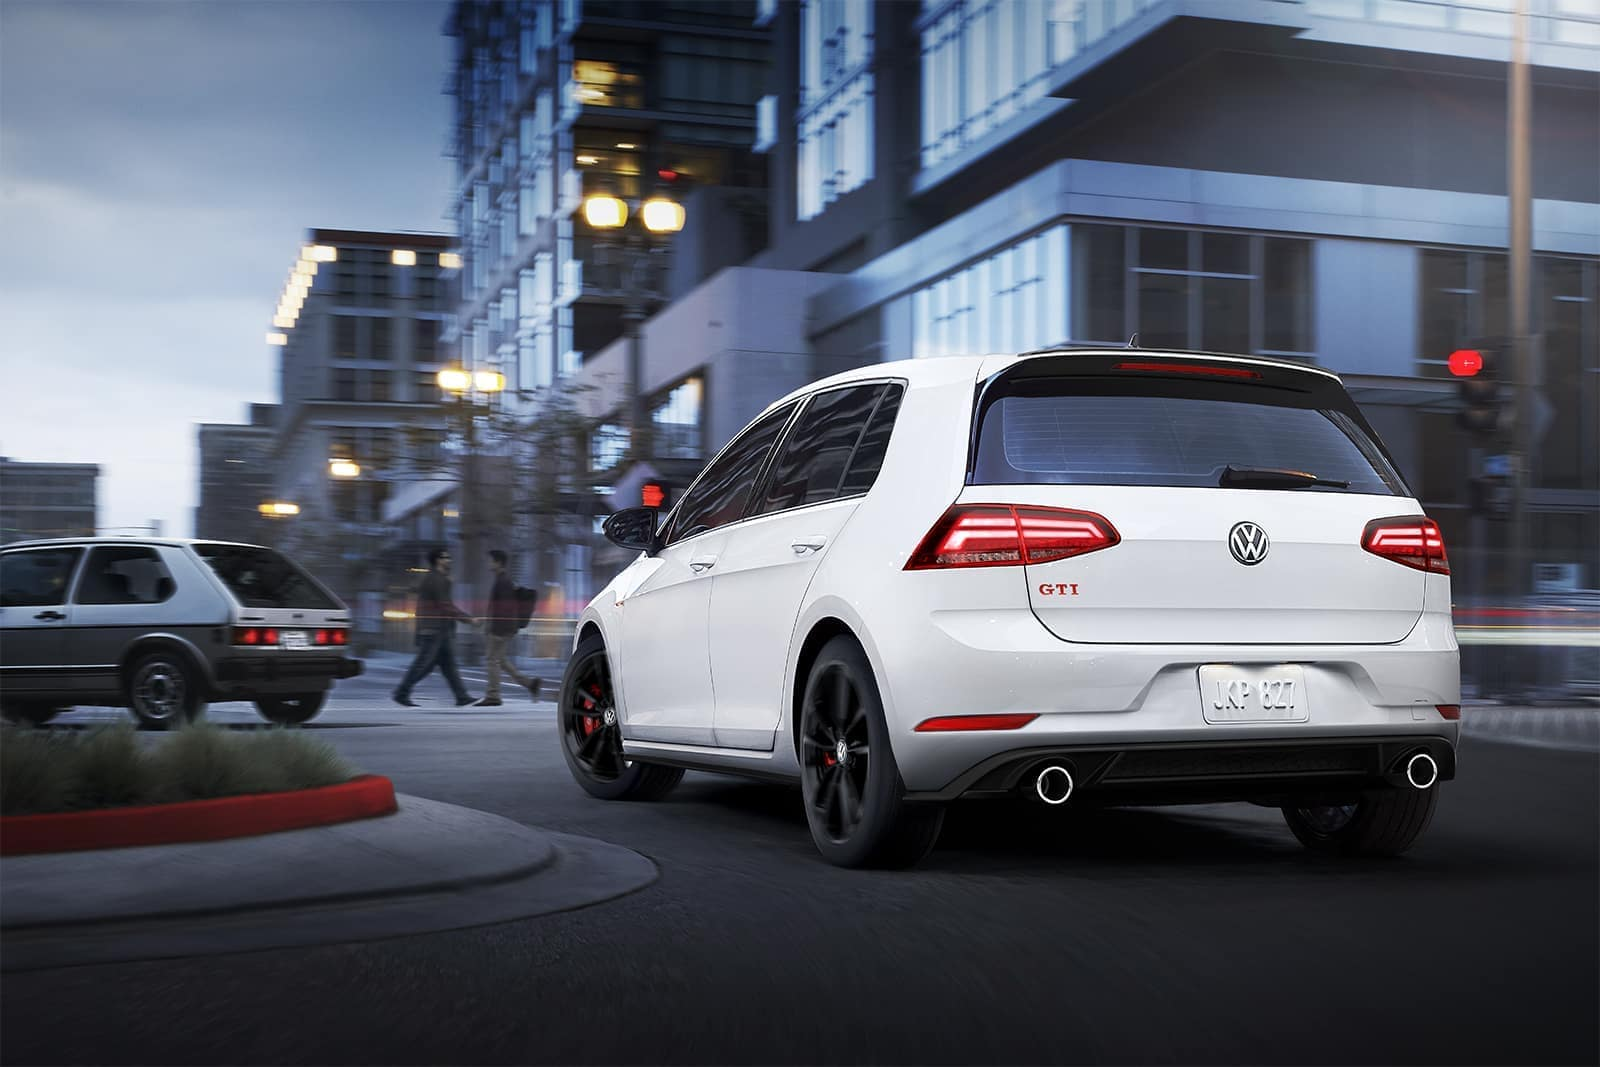 2019 VW Golf GTI Rear